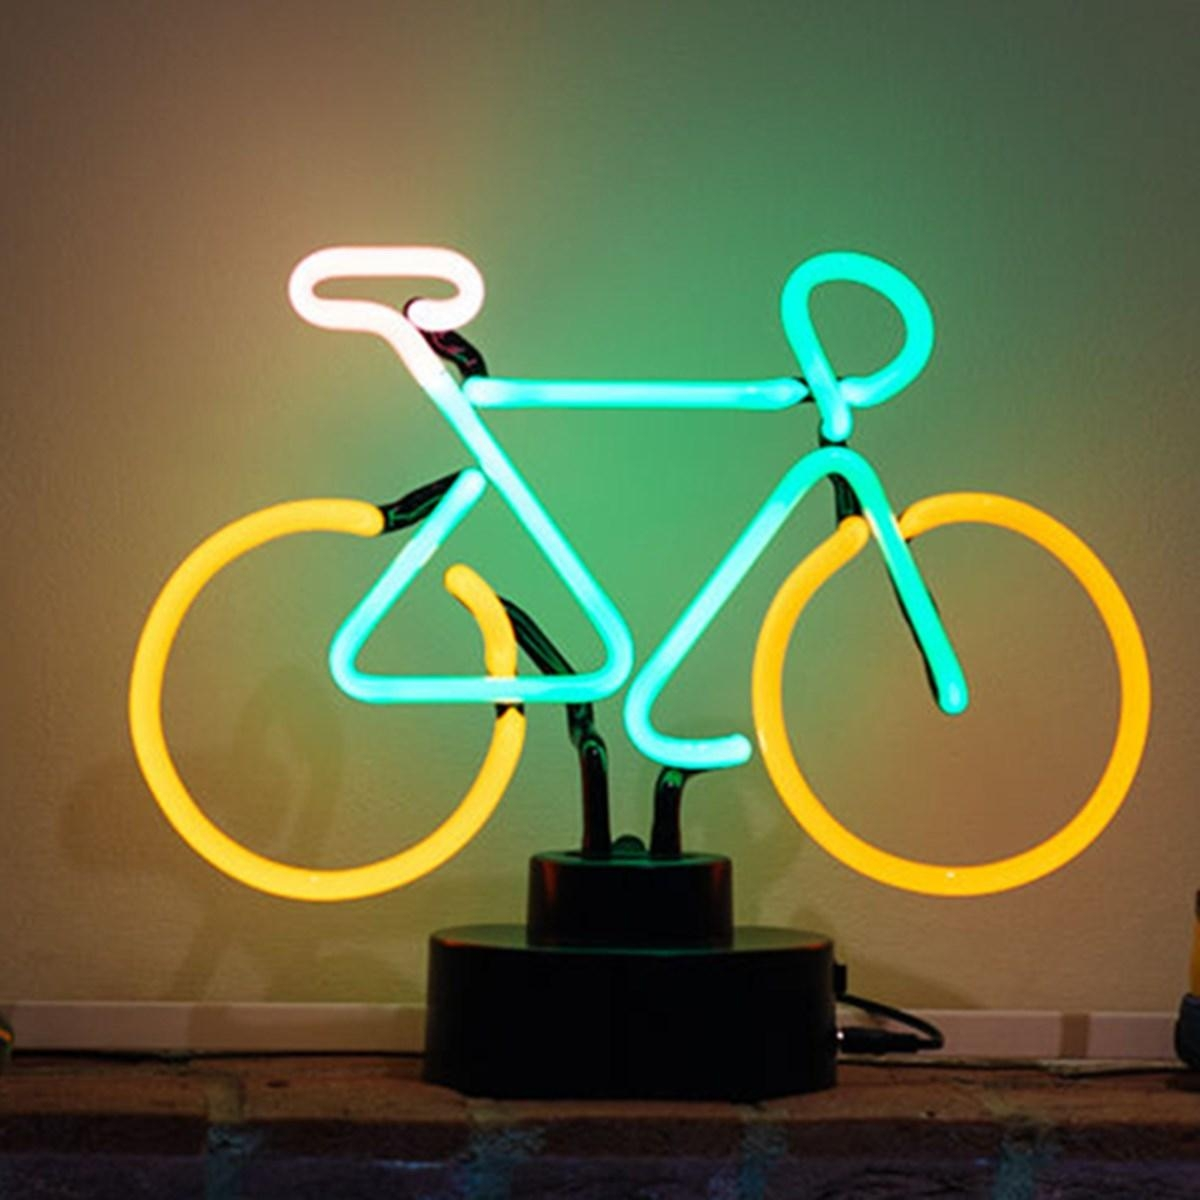 Remember This Before Buying Wall Neon Lights | Warisan Lighting Pertaining To Neon Light Wall Art (Image 9 of 20)